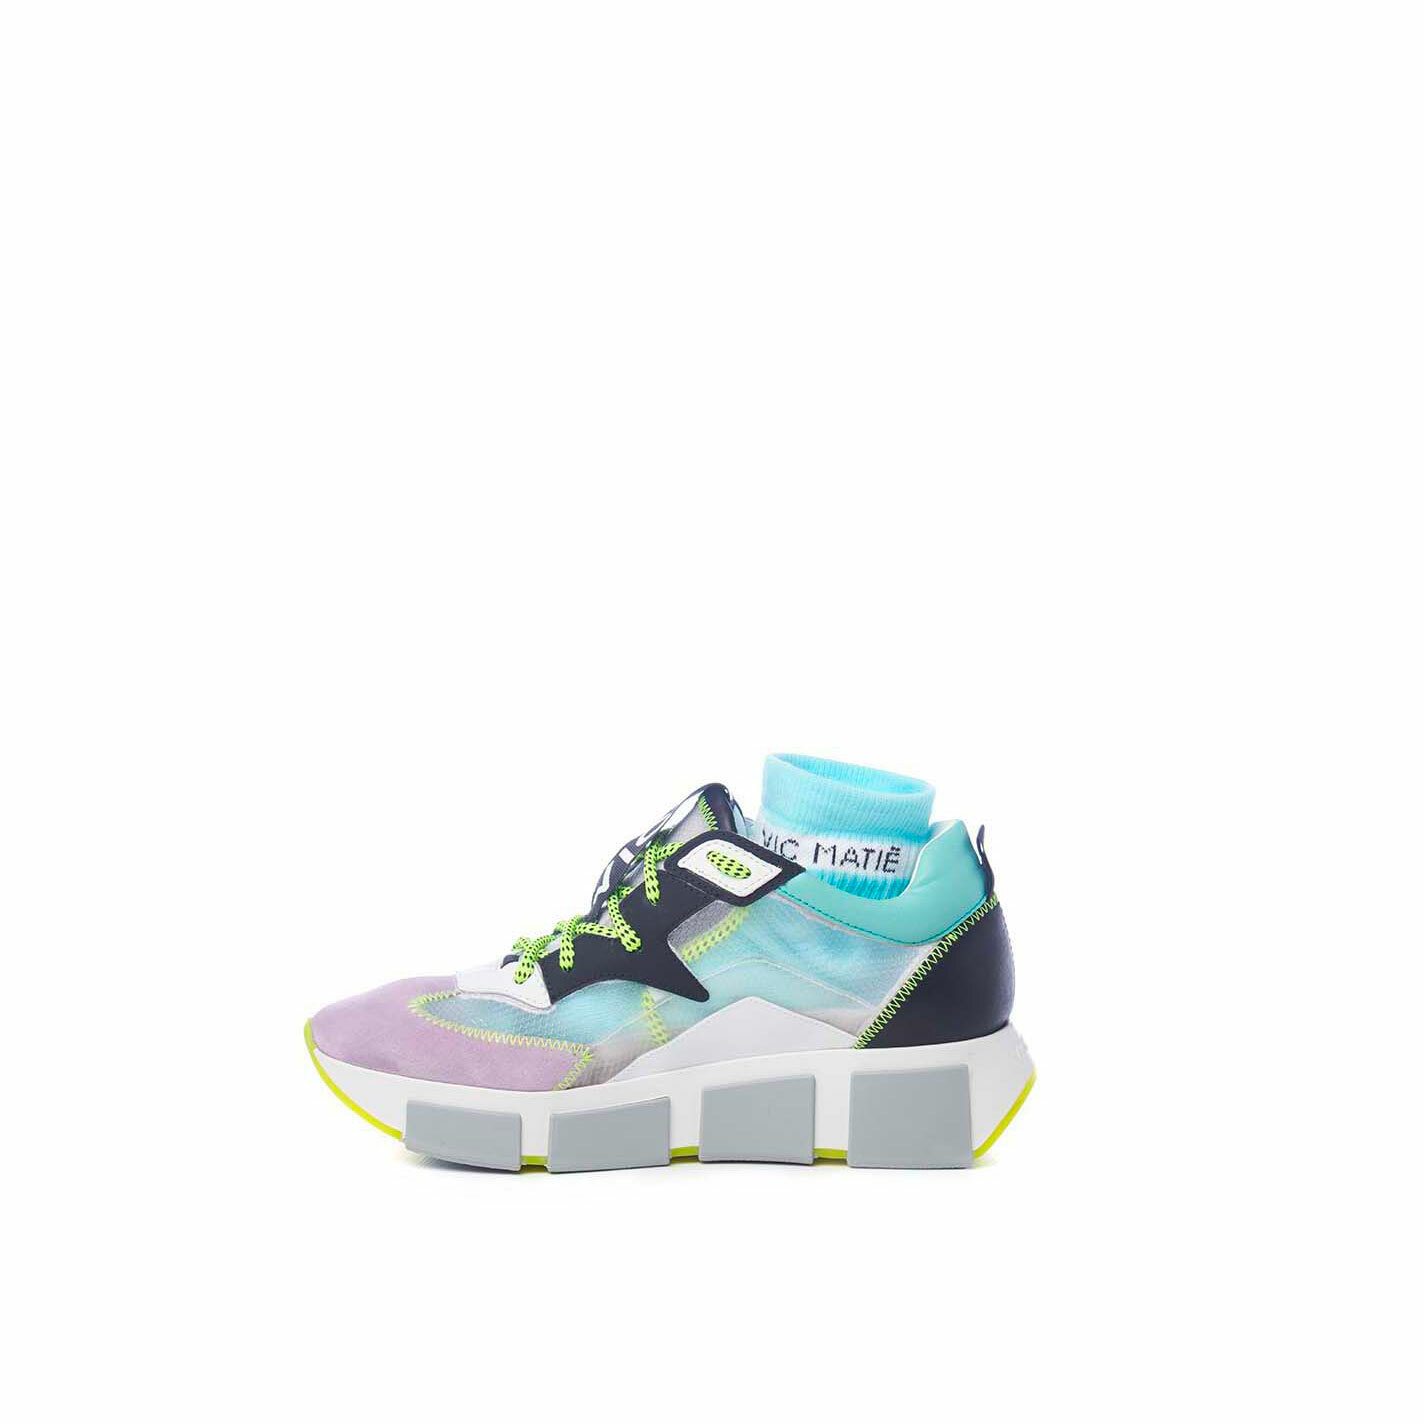 Wisteria/sky-blue running shoes in leather, split leather and see-though ripstop